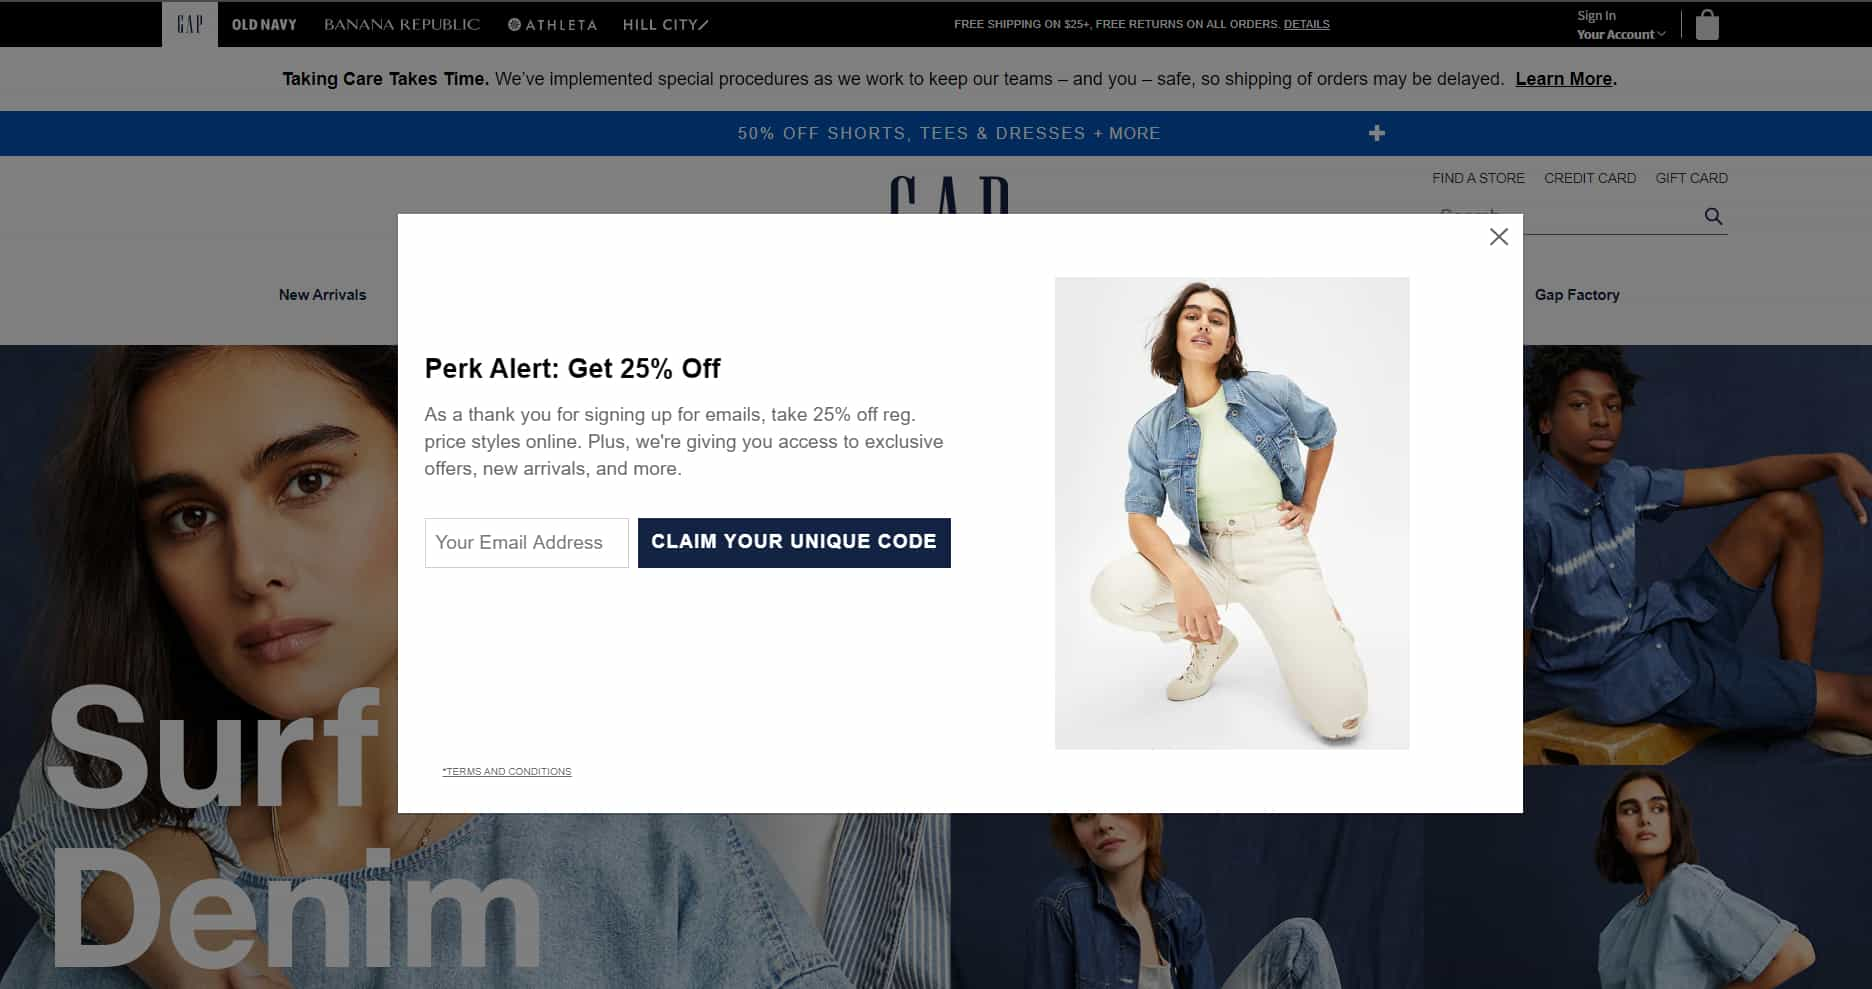 GAP popup to collect email for ecommerce newsletter